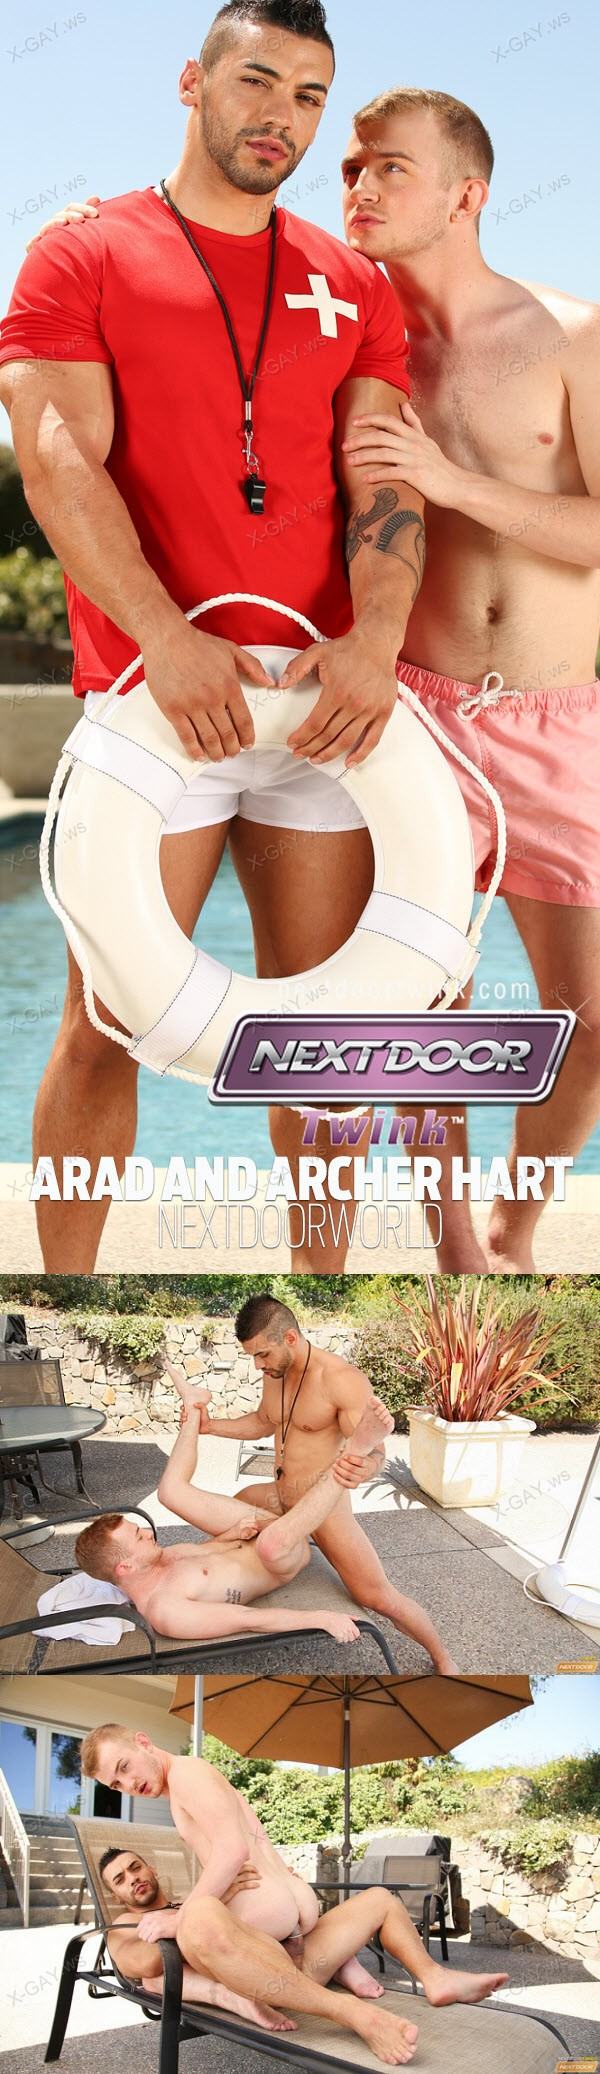 NextDoorTwink: The Lifeguard (Arad, Archer Hart)